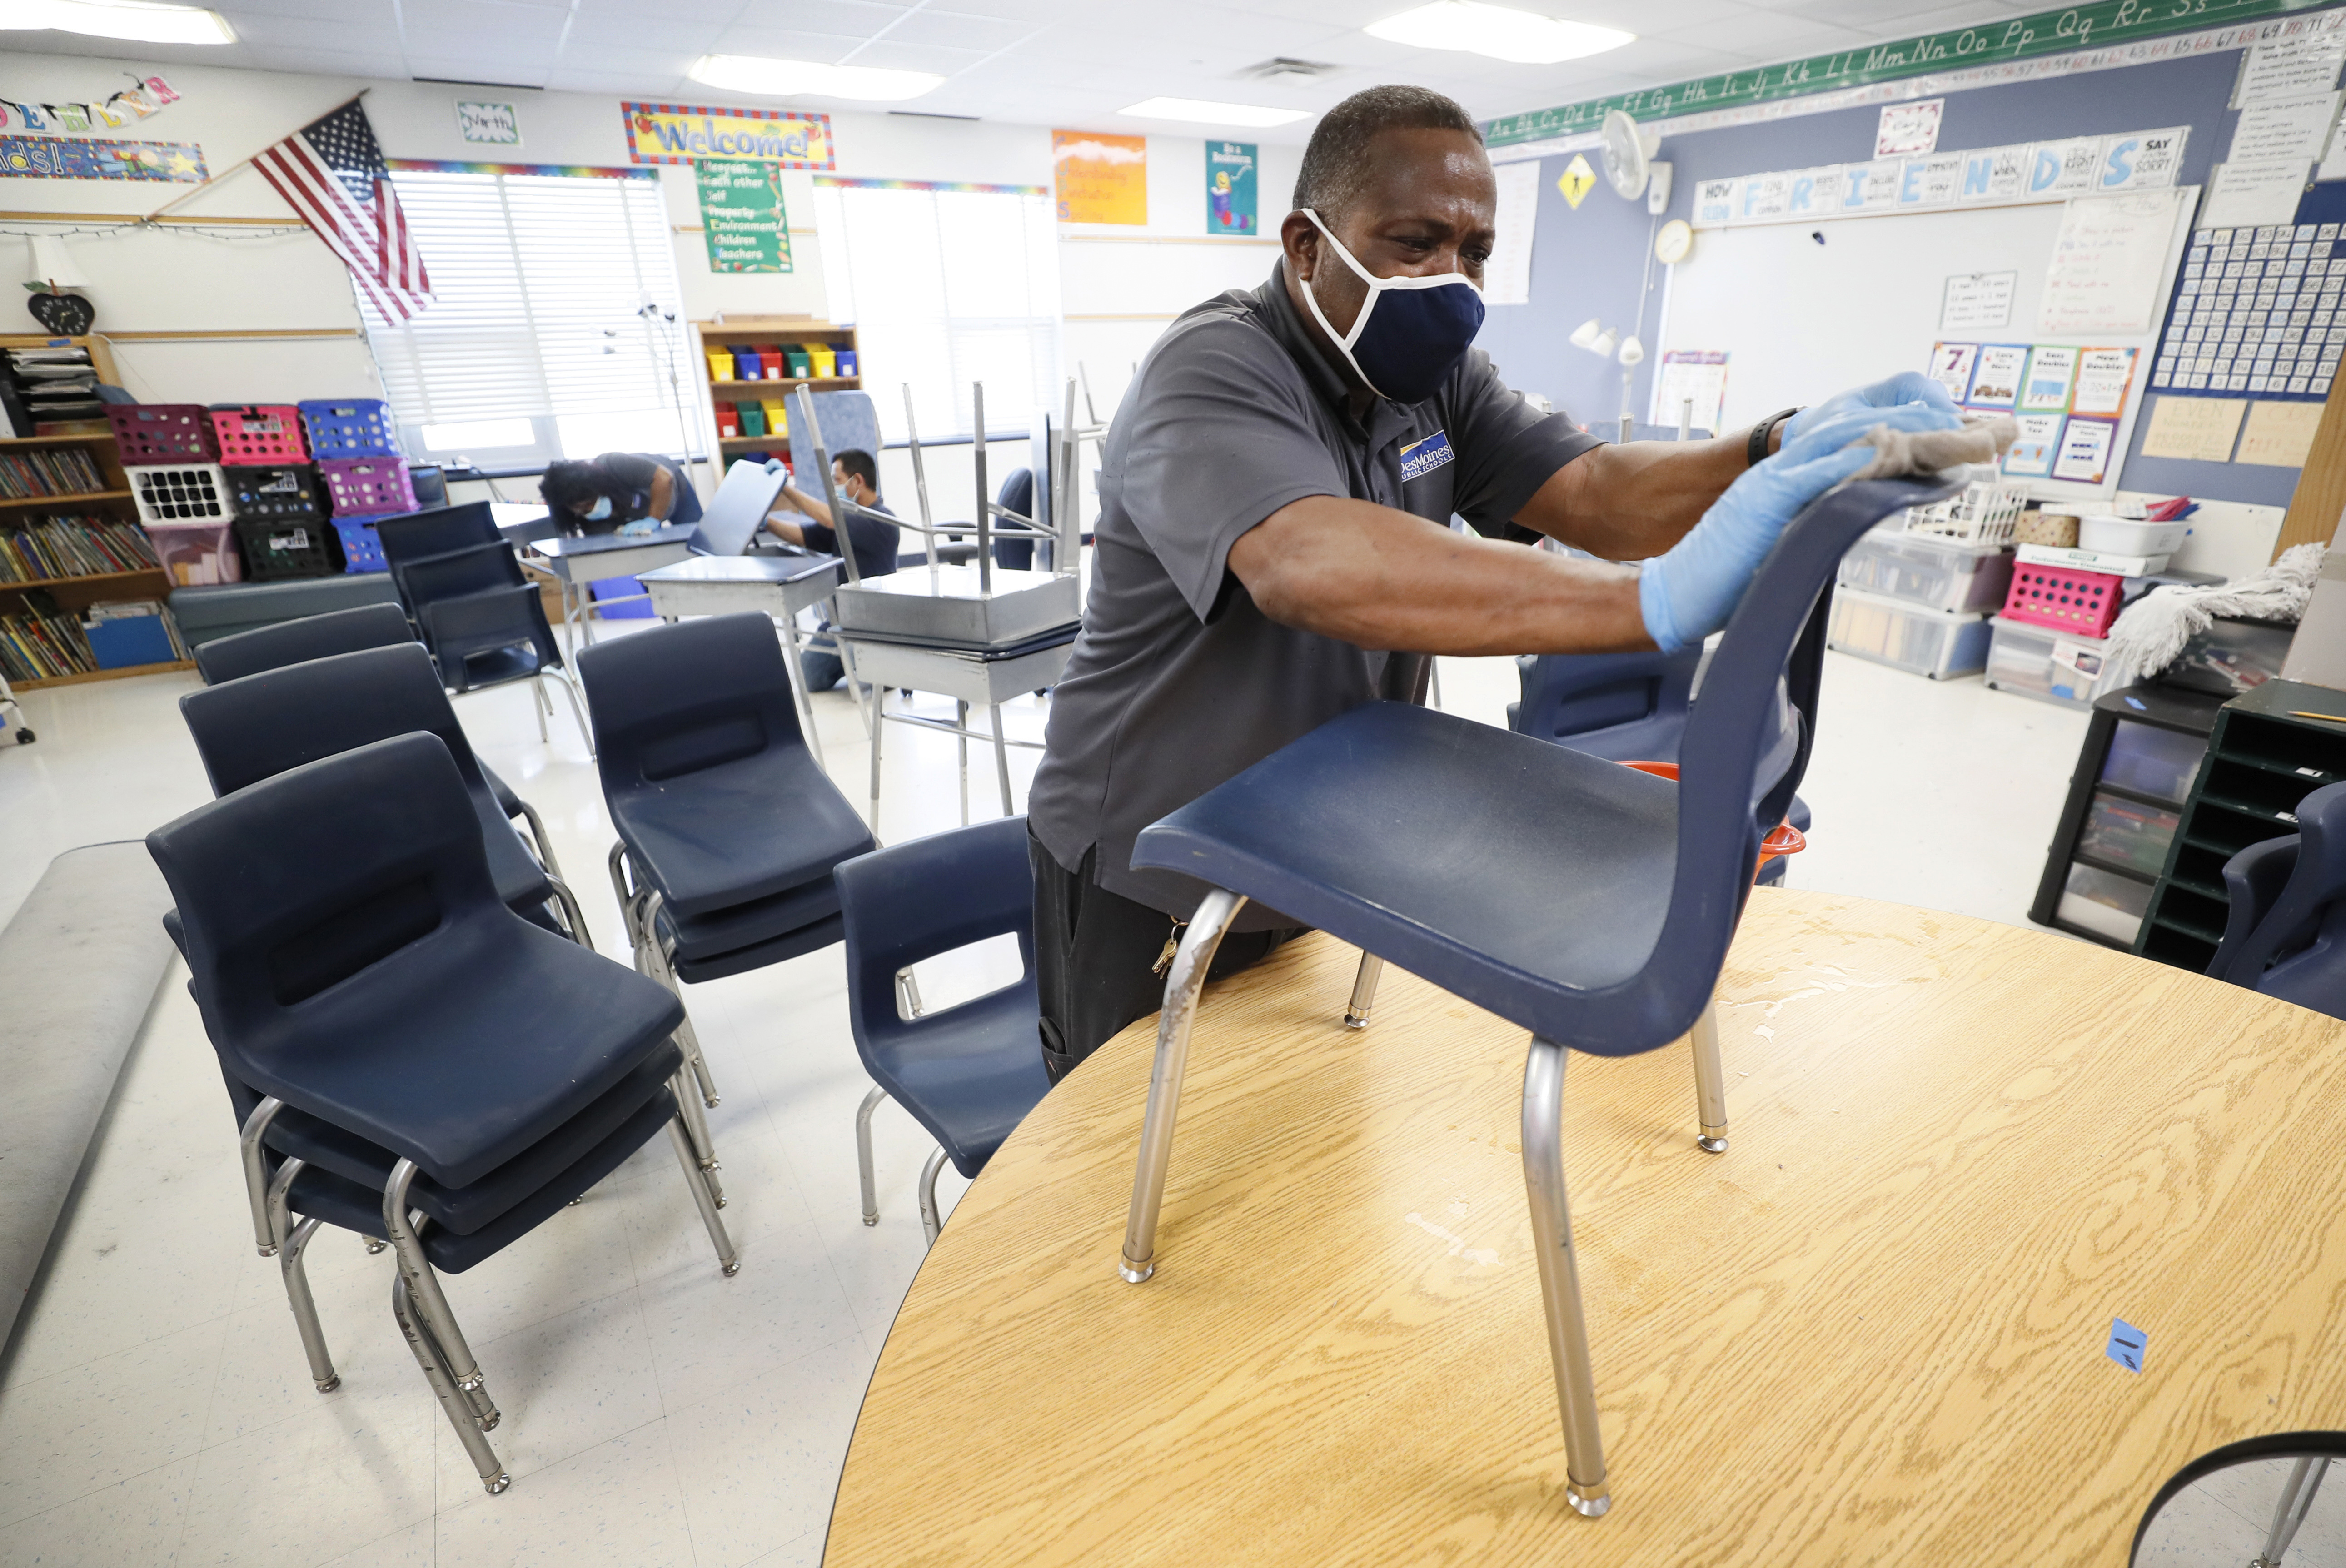 Custodian Tracy Harris cleans chairs in a classroom at Brubaker Elementary School in Des Moines, Iowa ON July 8, 2020.